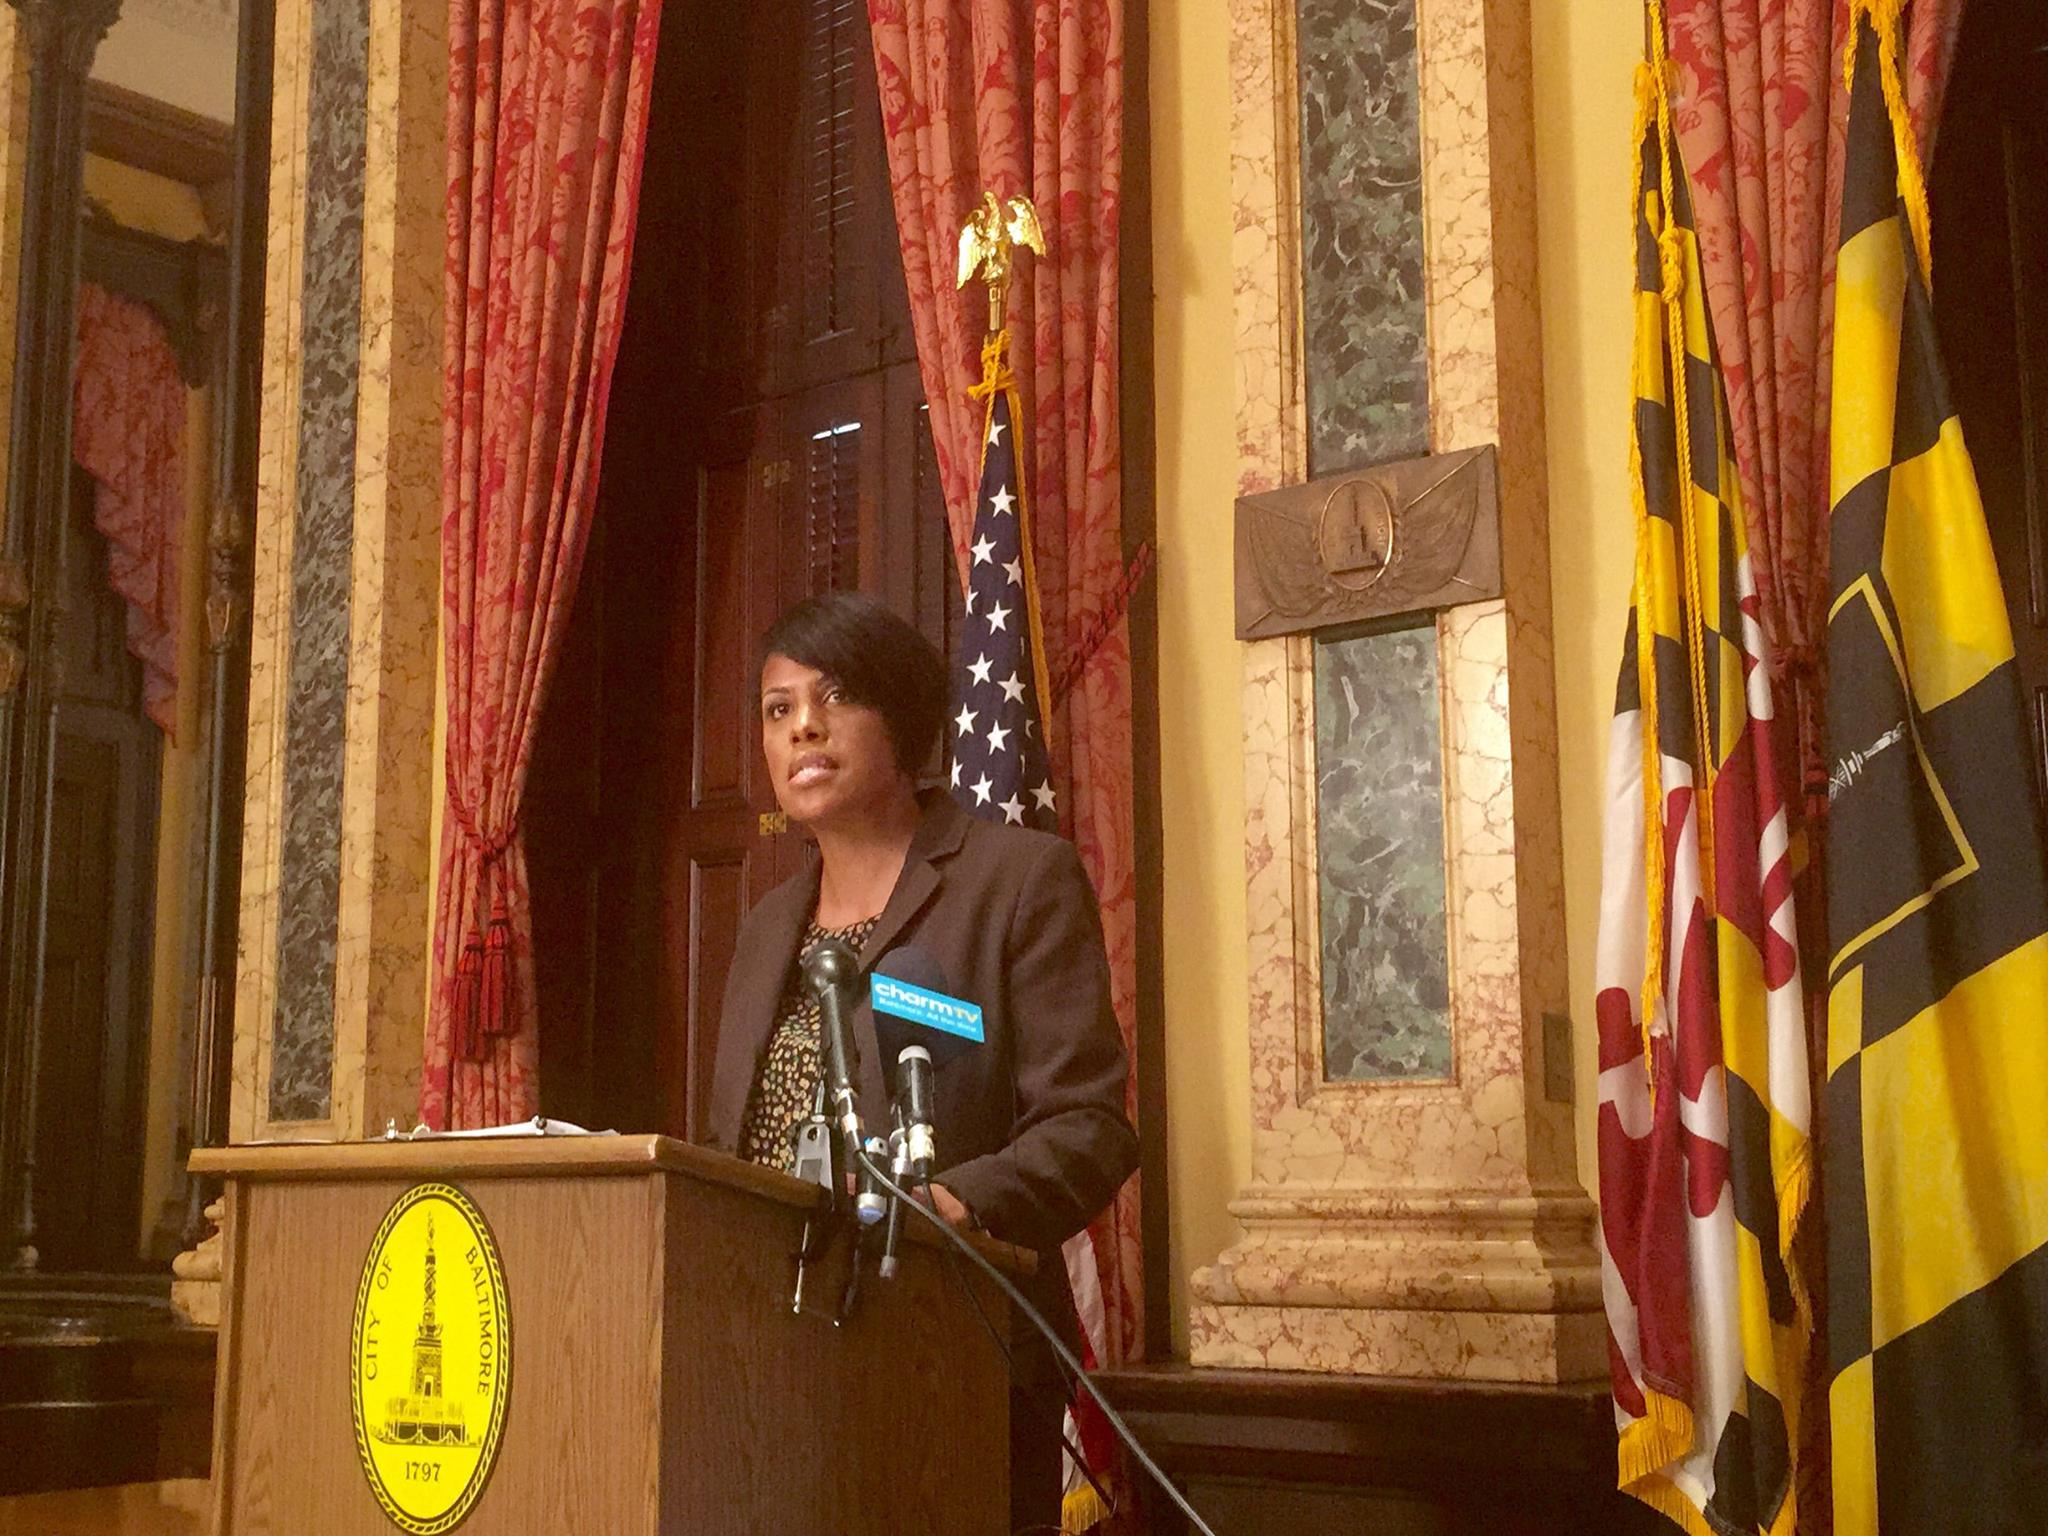 Rascovar: The failed leadership of Baltimore's mayor